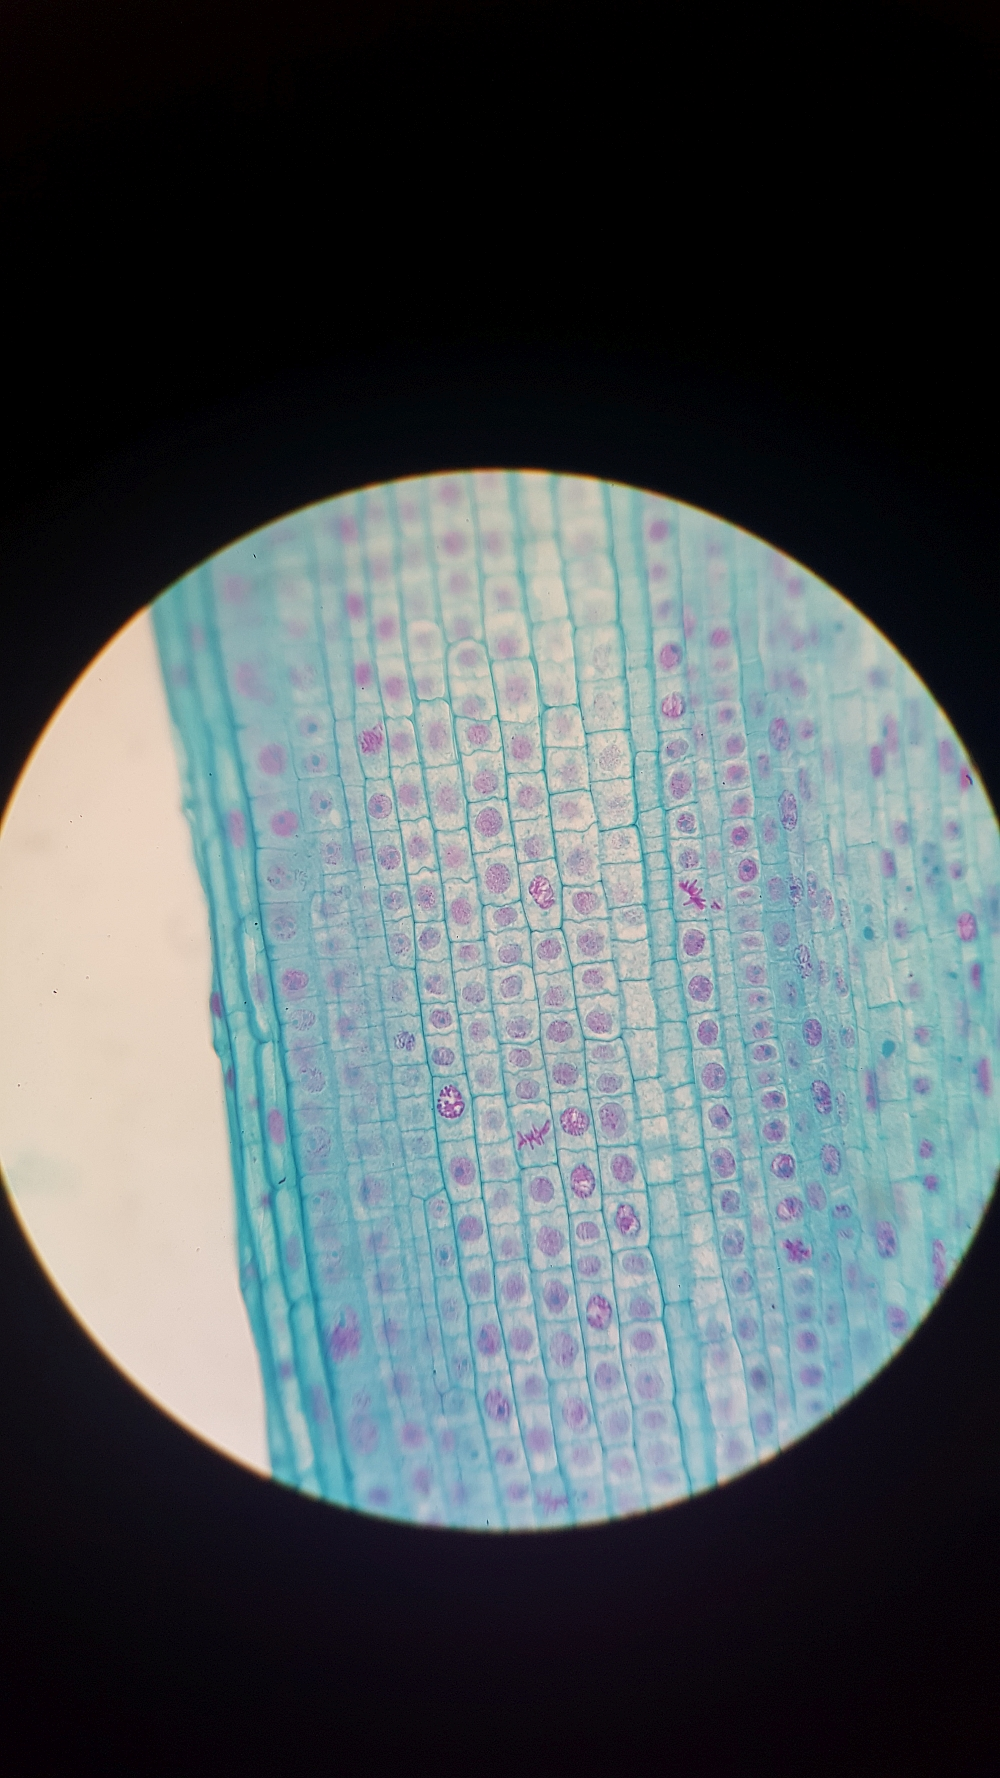 Onion root tip under a compound microscope!